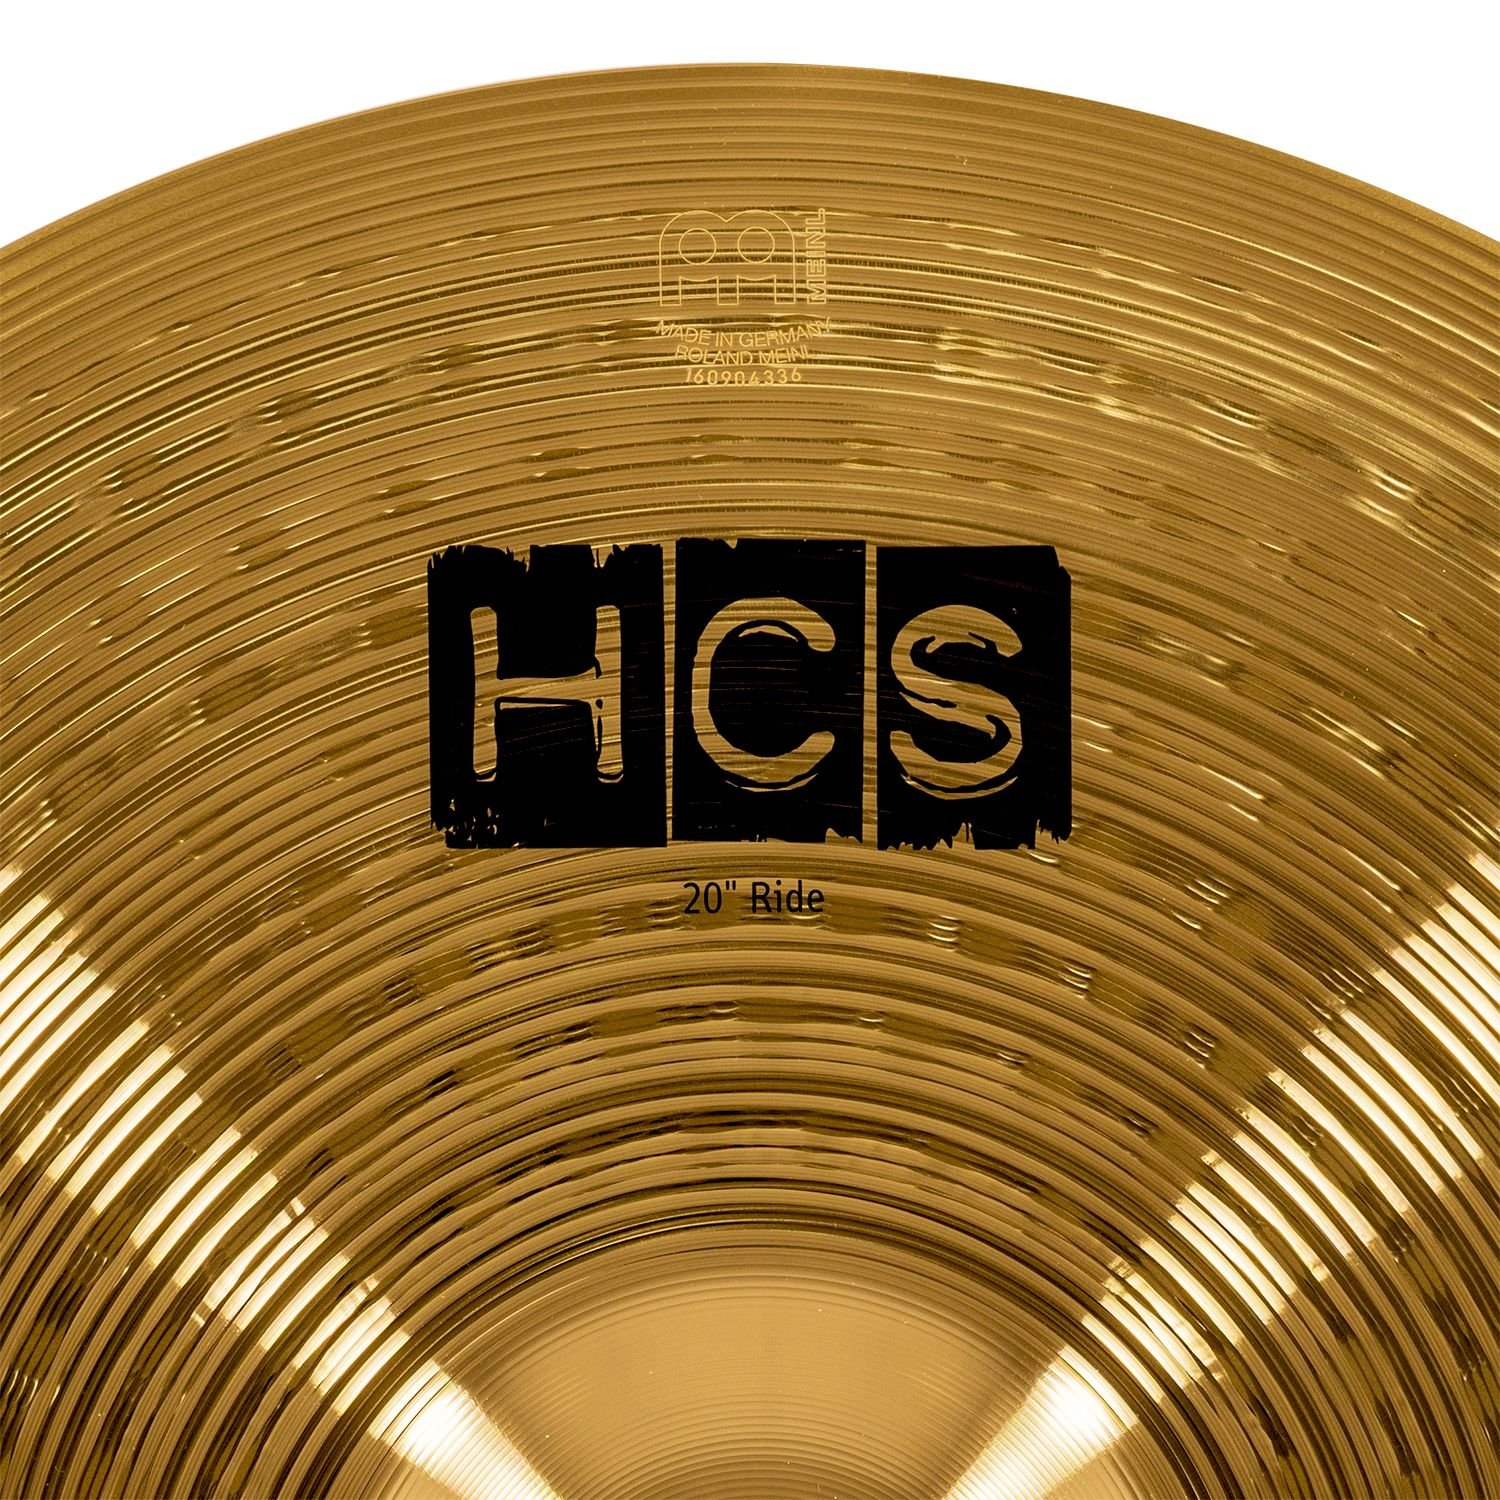 Meinl Cymbals HCS20R 20'' HCS Brass Ride Cymbal for Drum Set (VIDEO) by Meinl Cymbals (Image #3)